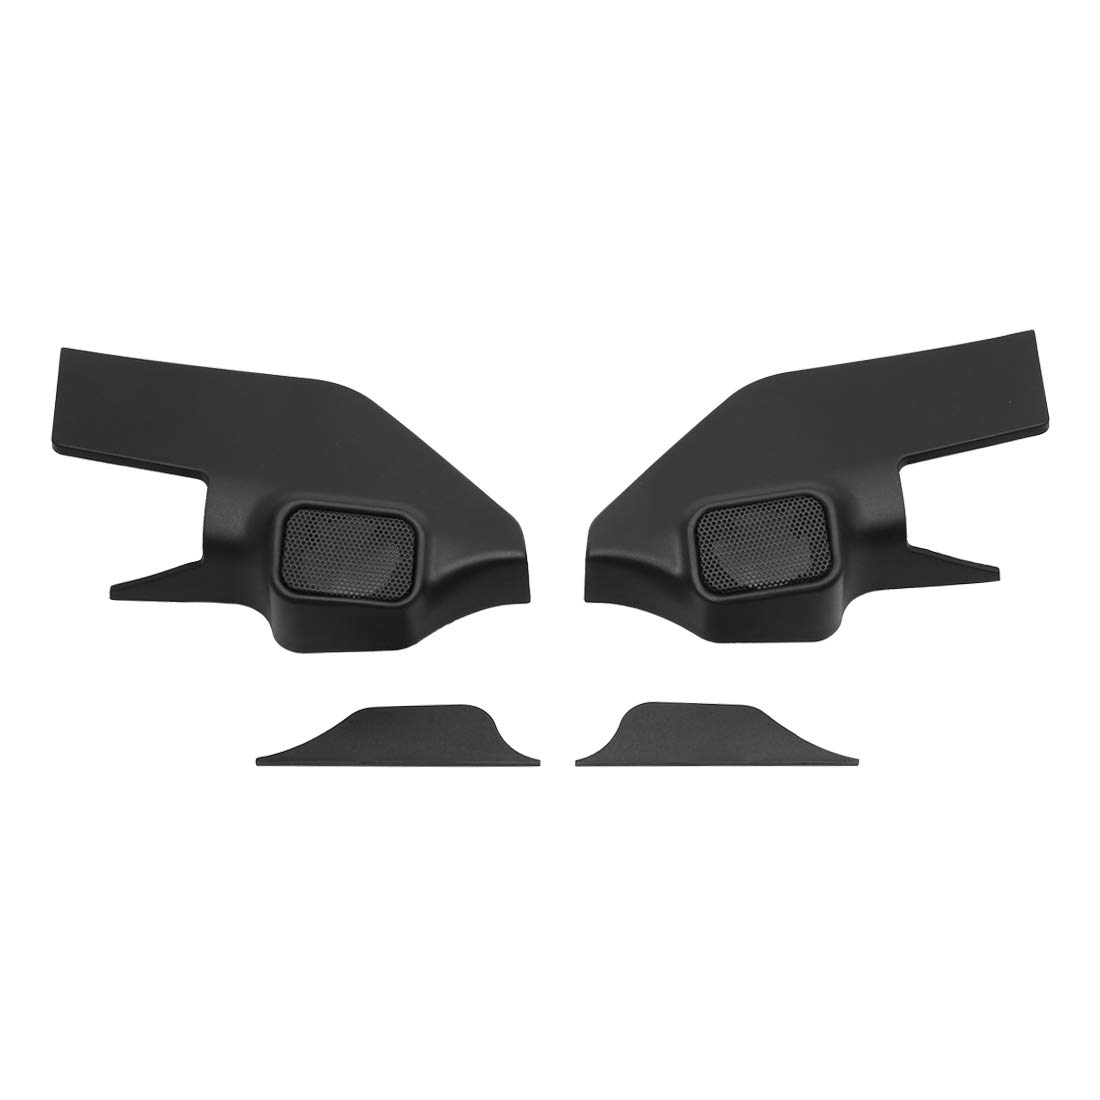 uxcell Pair Black Car Speaker Trim Cover Tweeter Protector for 2013-2017 Nissan Tiida